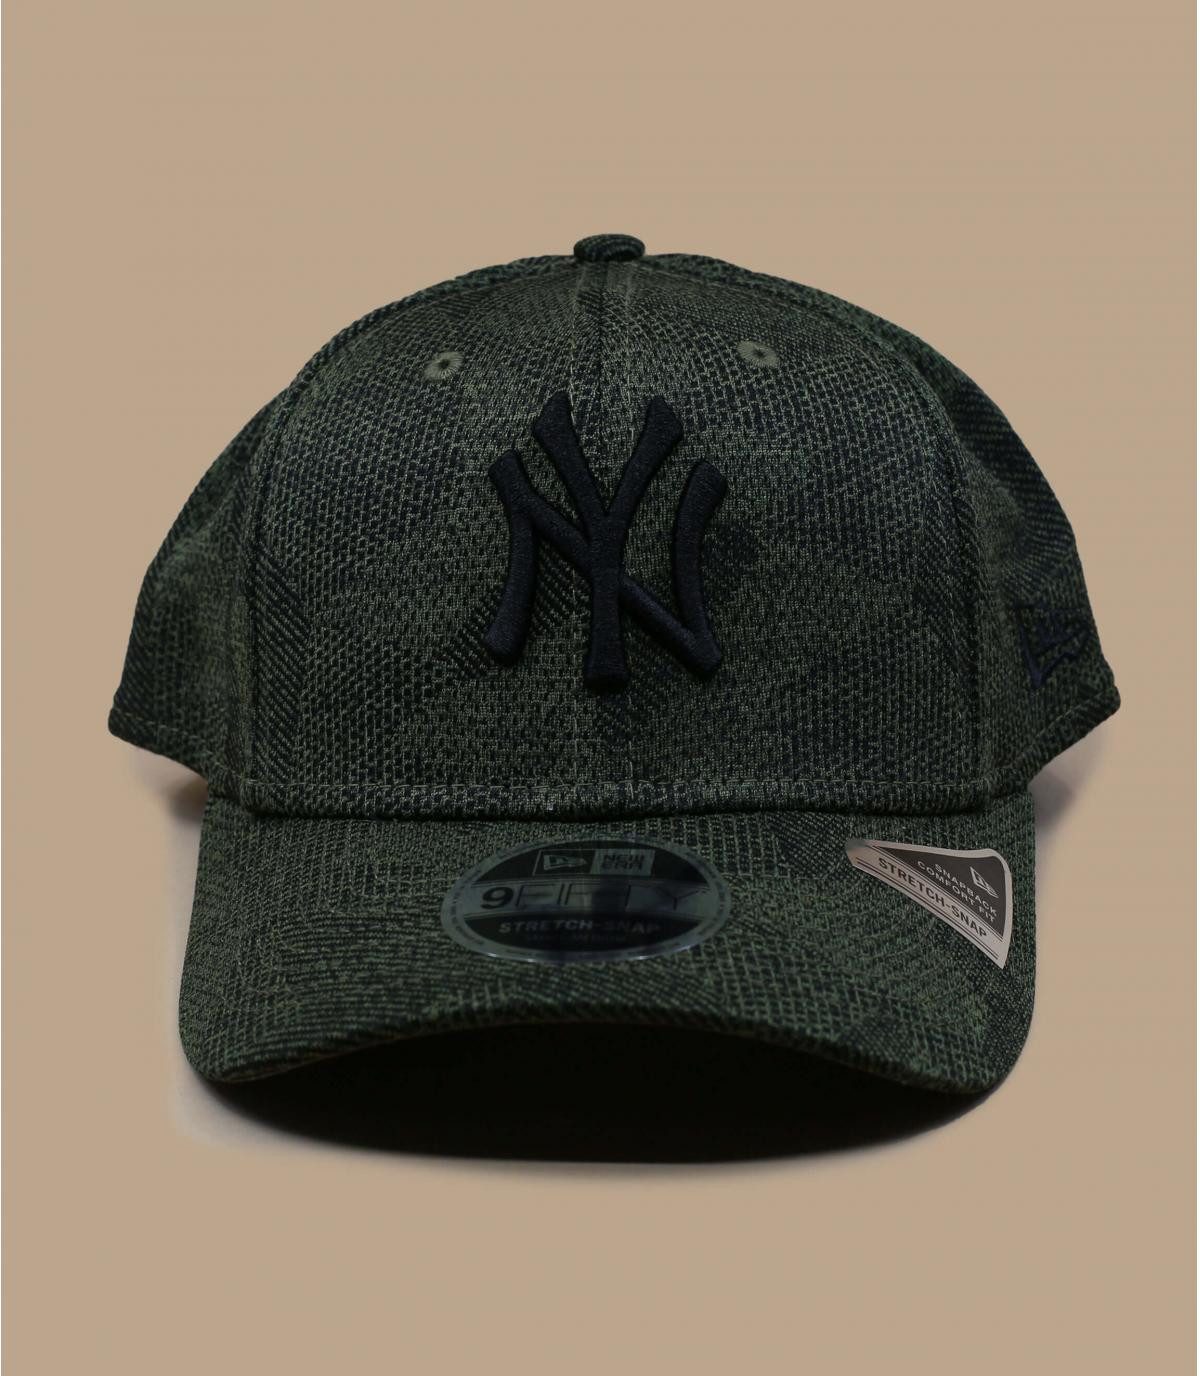 Détails Snapback Engineered Fit Stretch Snap NY 950 olive - image 2